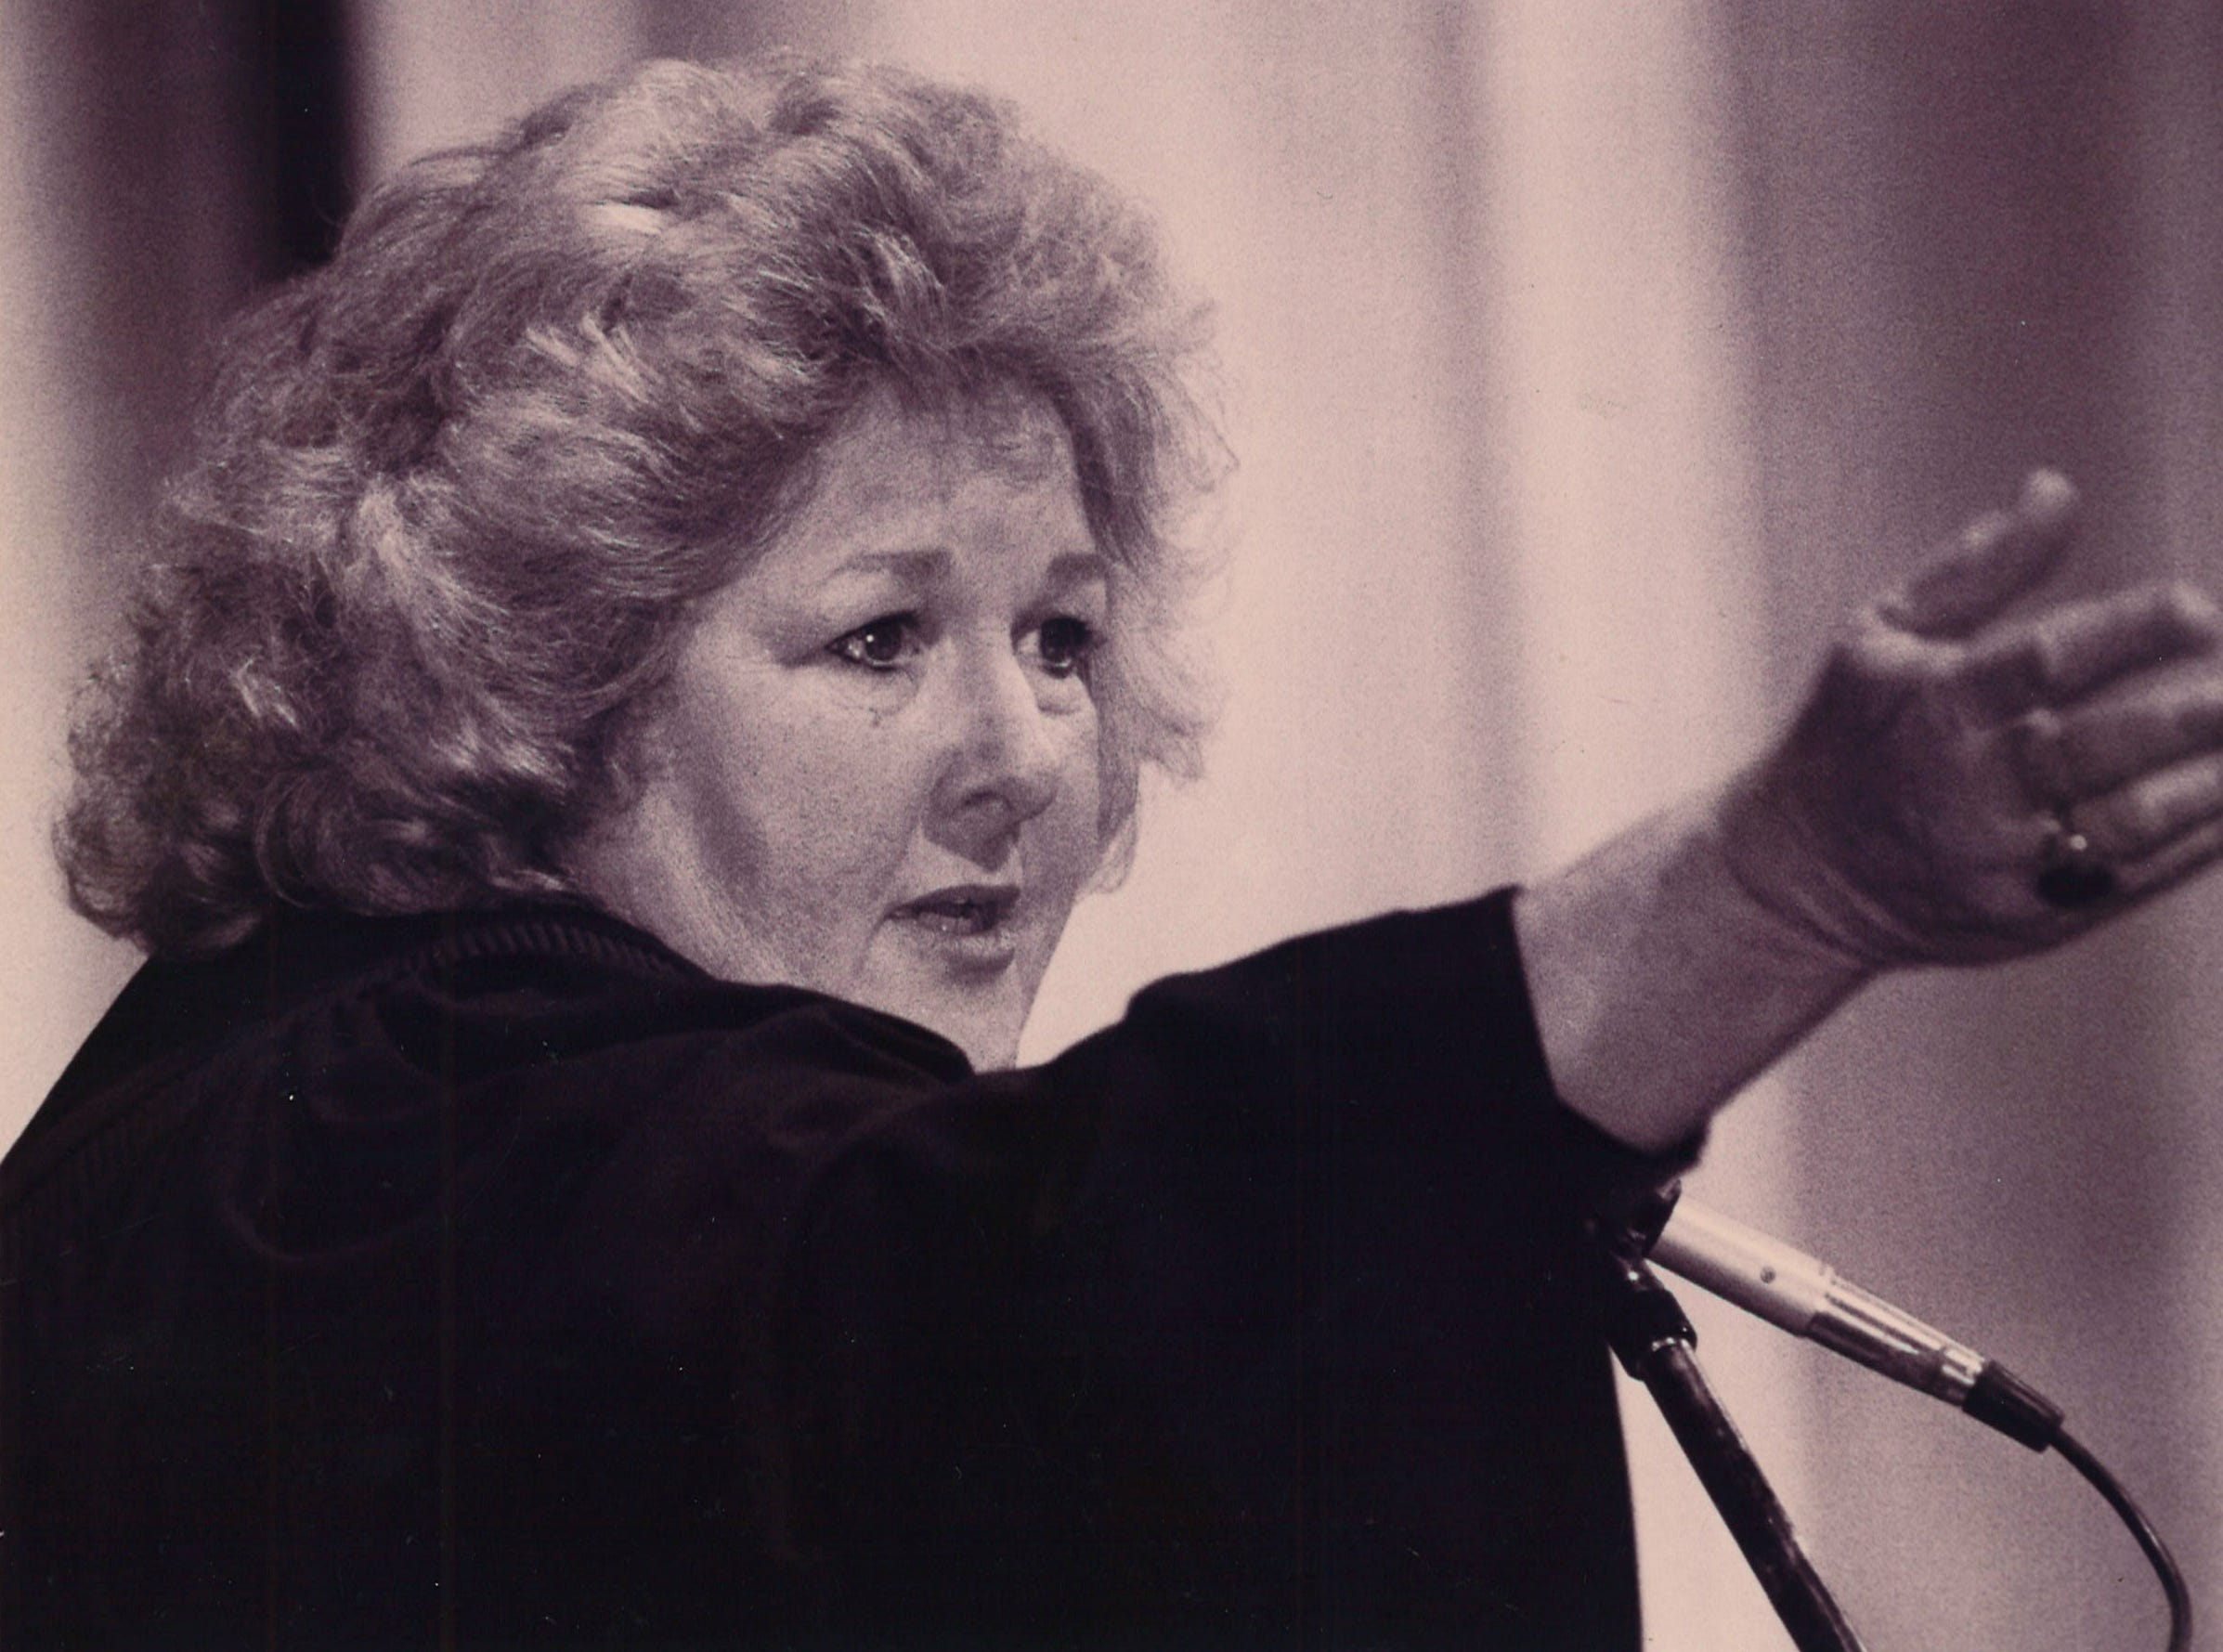 Judge Janis Graham Jack at her investiture ceremony on April 7, 1994 in Corpus Christi. Jack was the first woman federal judge to serve in Texas south of San Antonio.